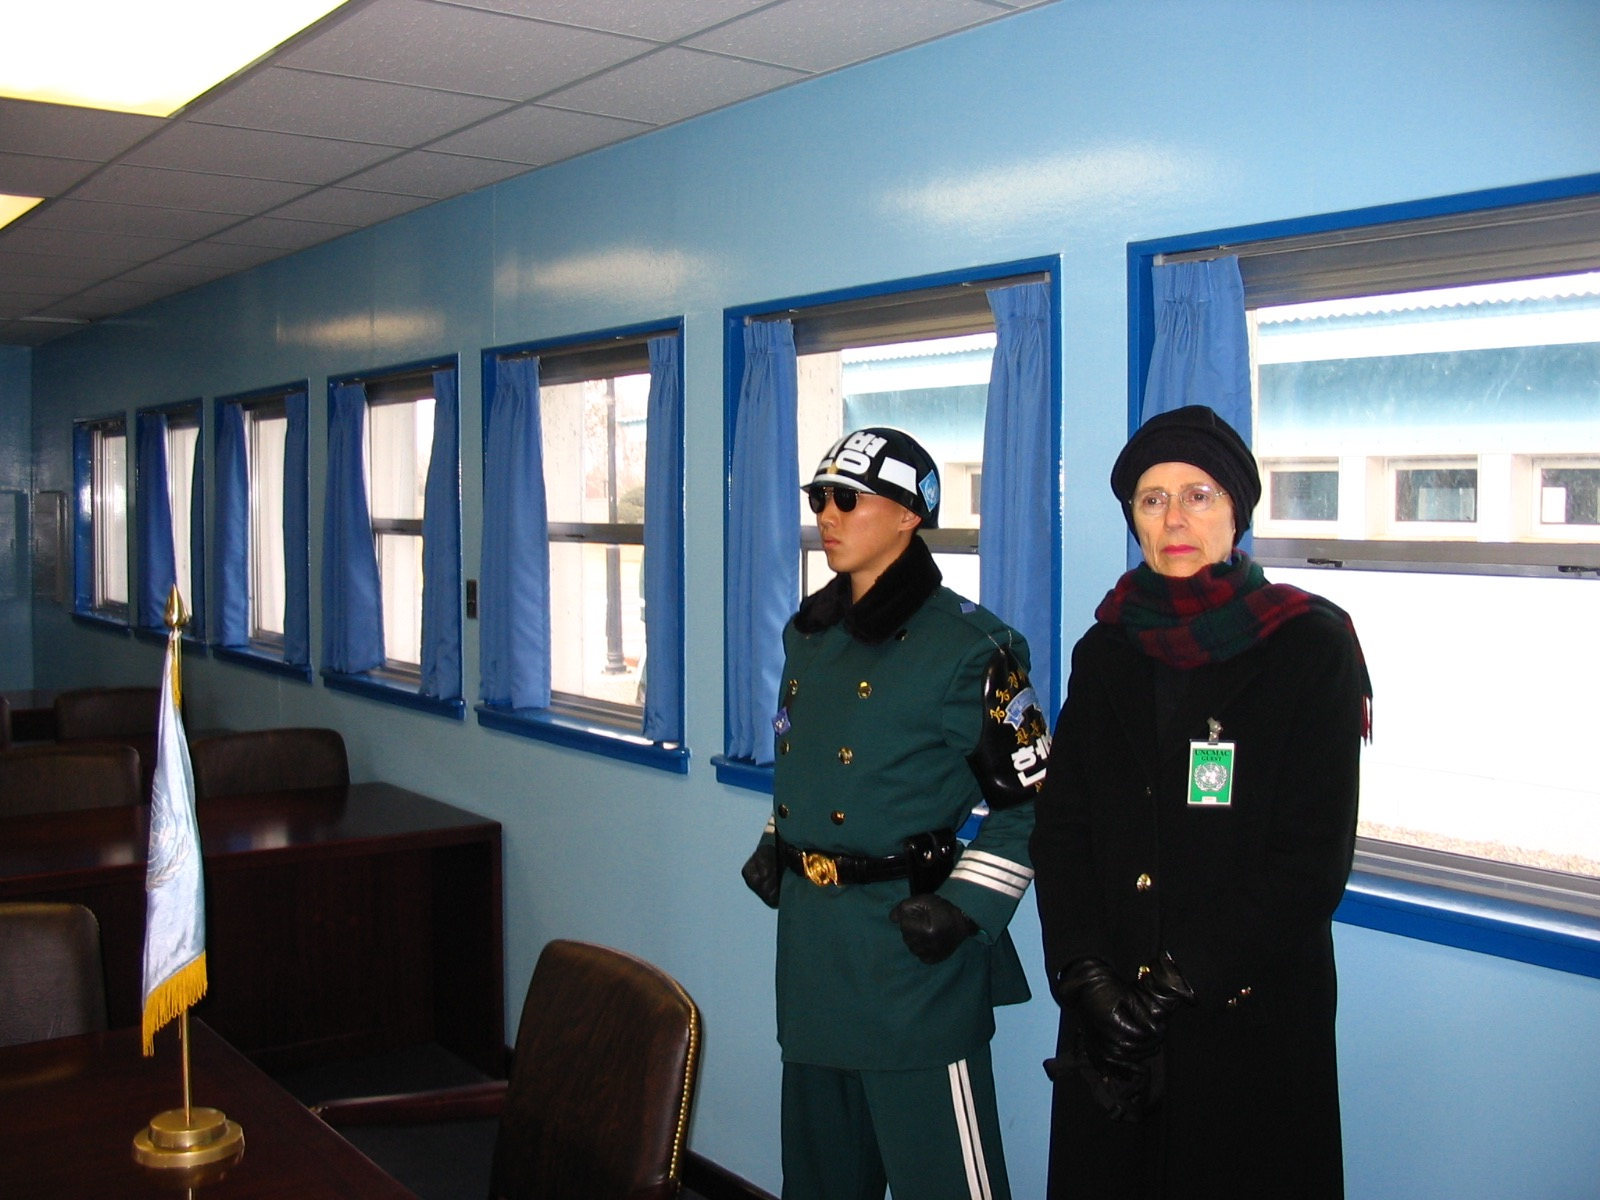 There is something about being in North Korea that makes everyone so serious.